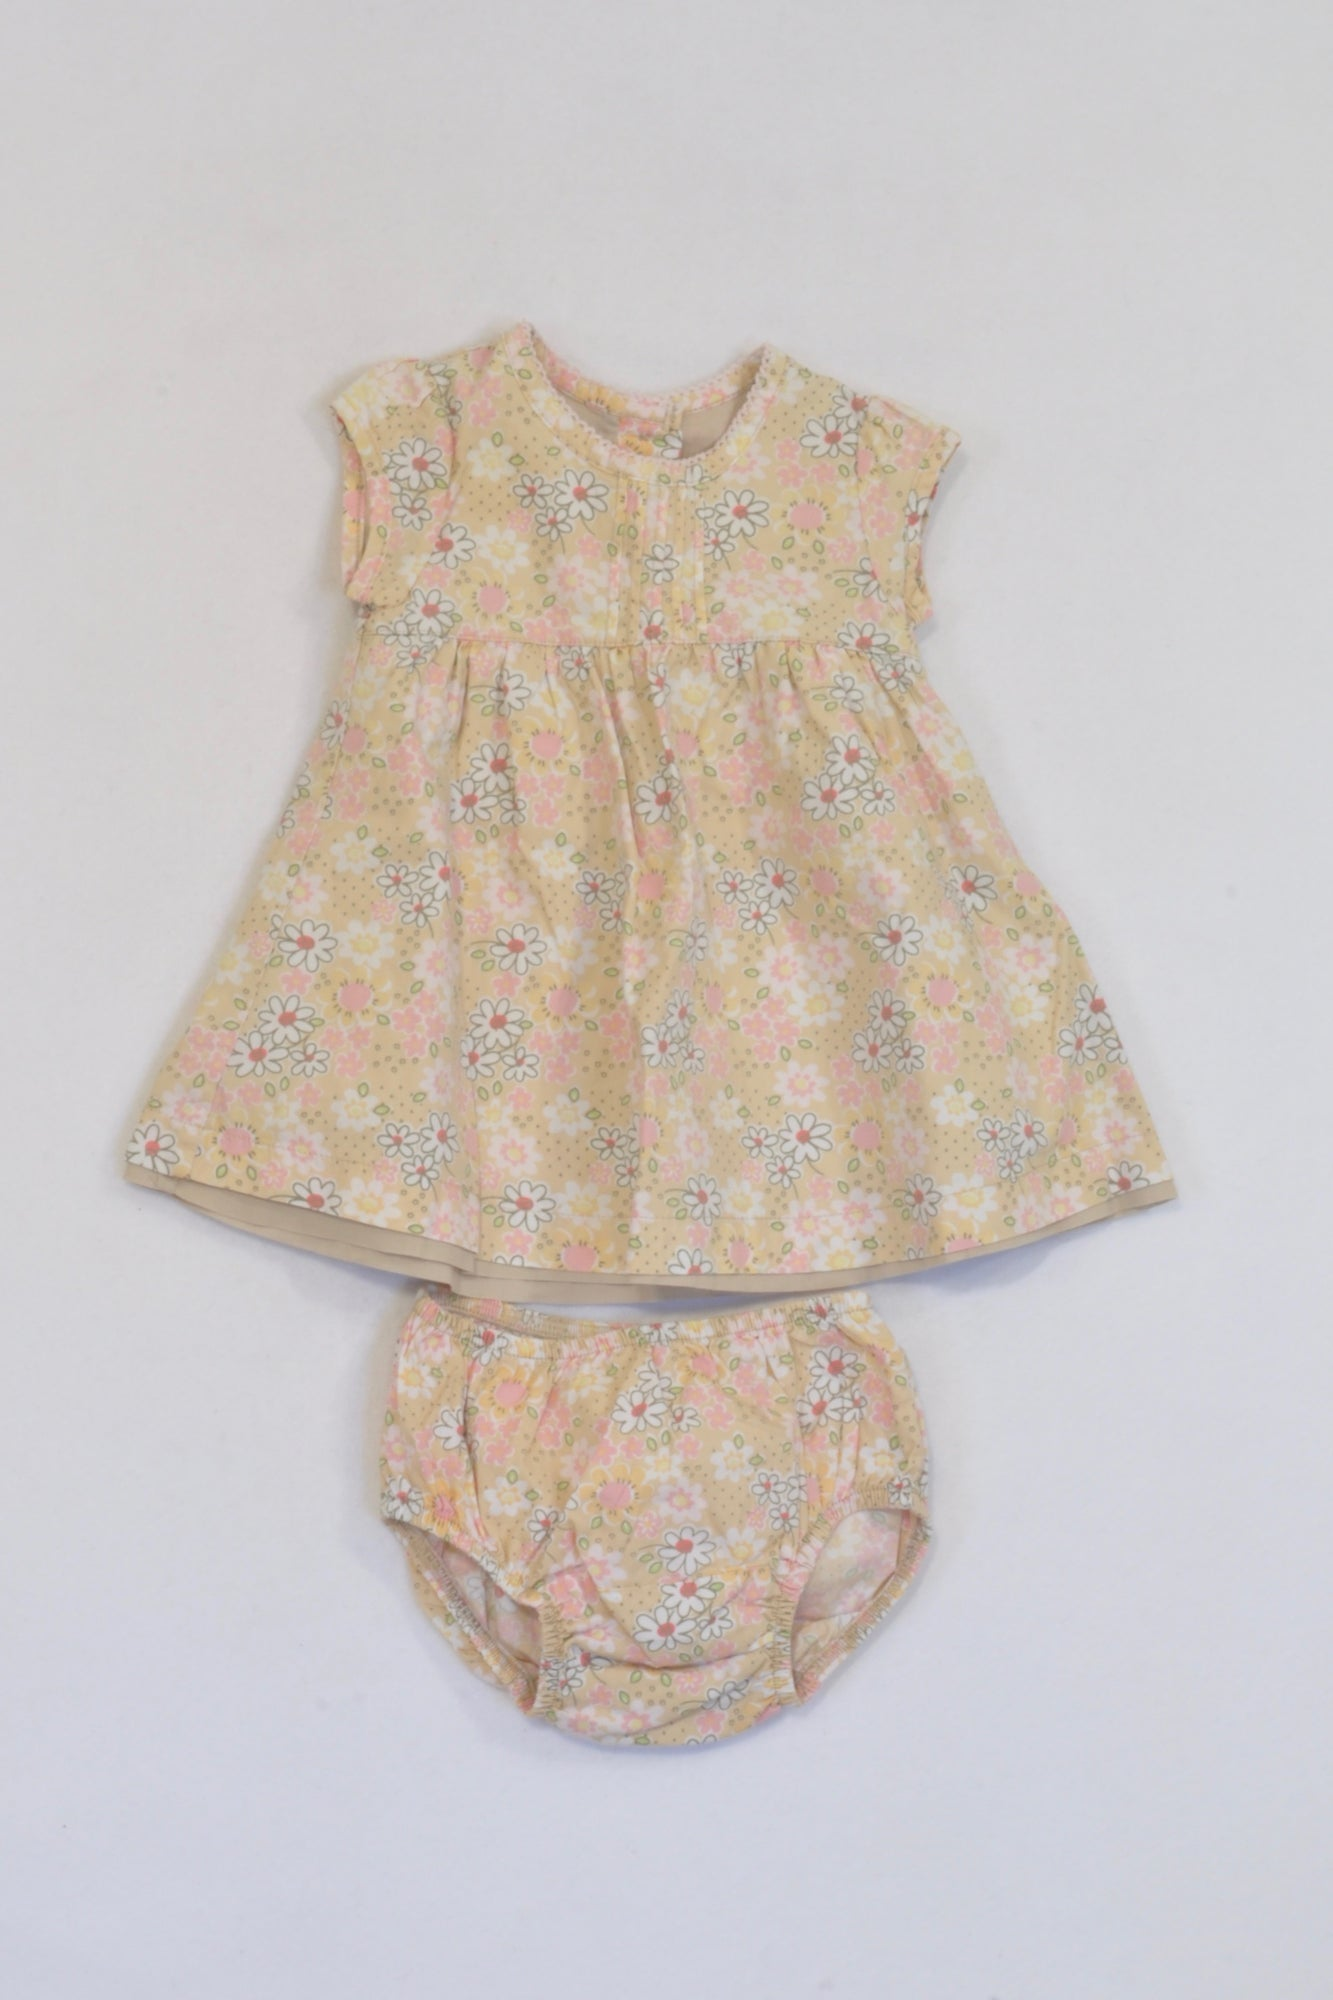 371f8d86166 Mothercare Yellow Flower Bloomer   Dress Girls 0-3 months – Once More